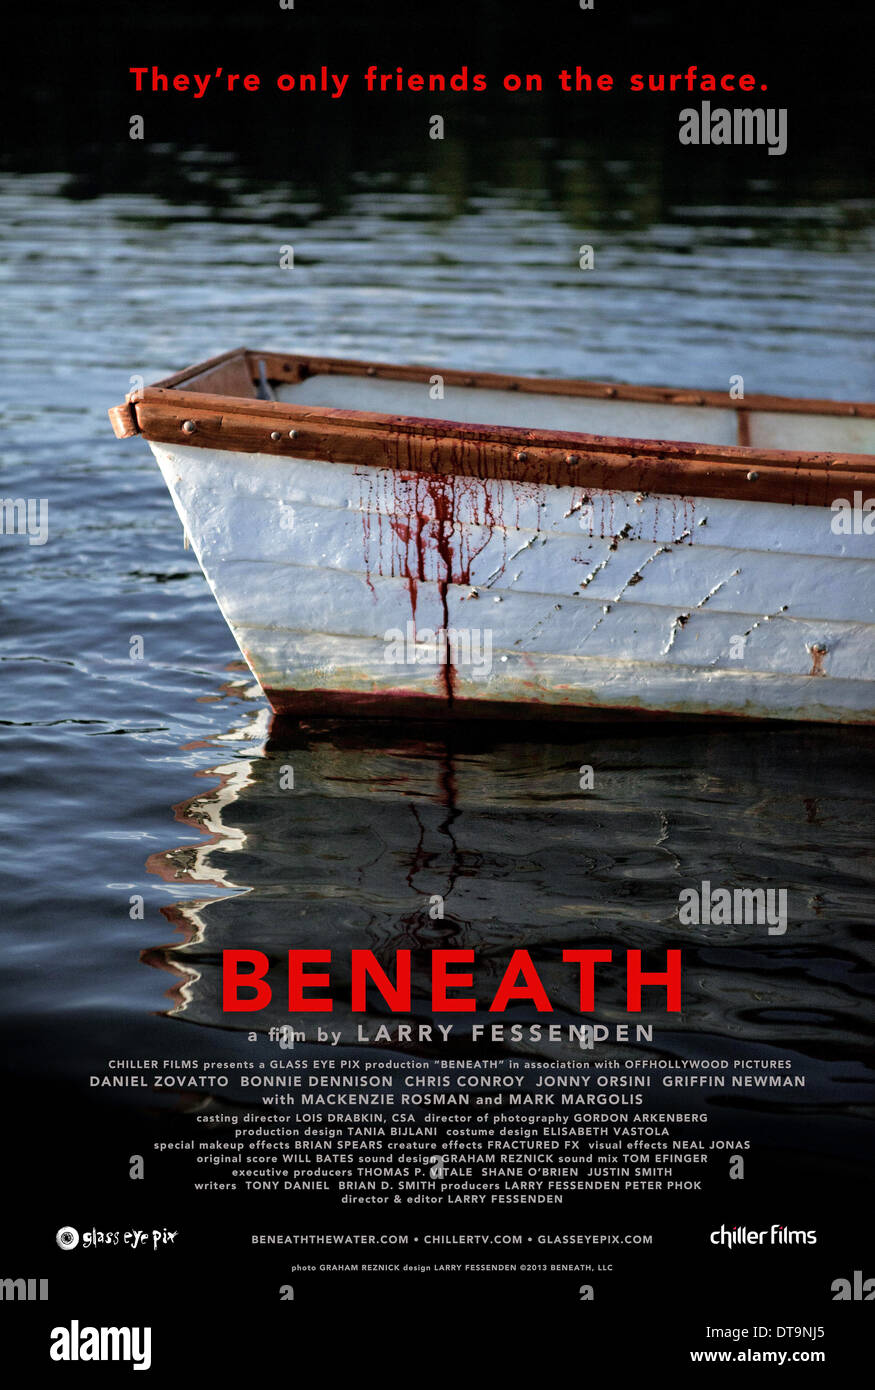 BLOOD-STAINED ROWING BOAT BENEATH (2013) - Stock Image